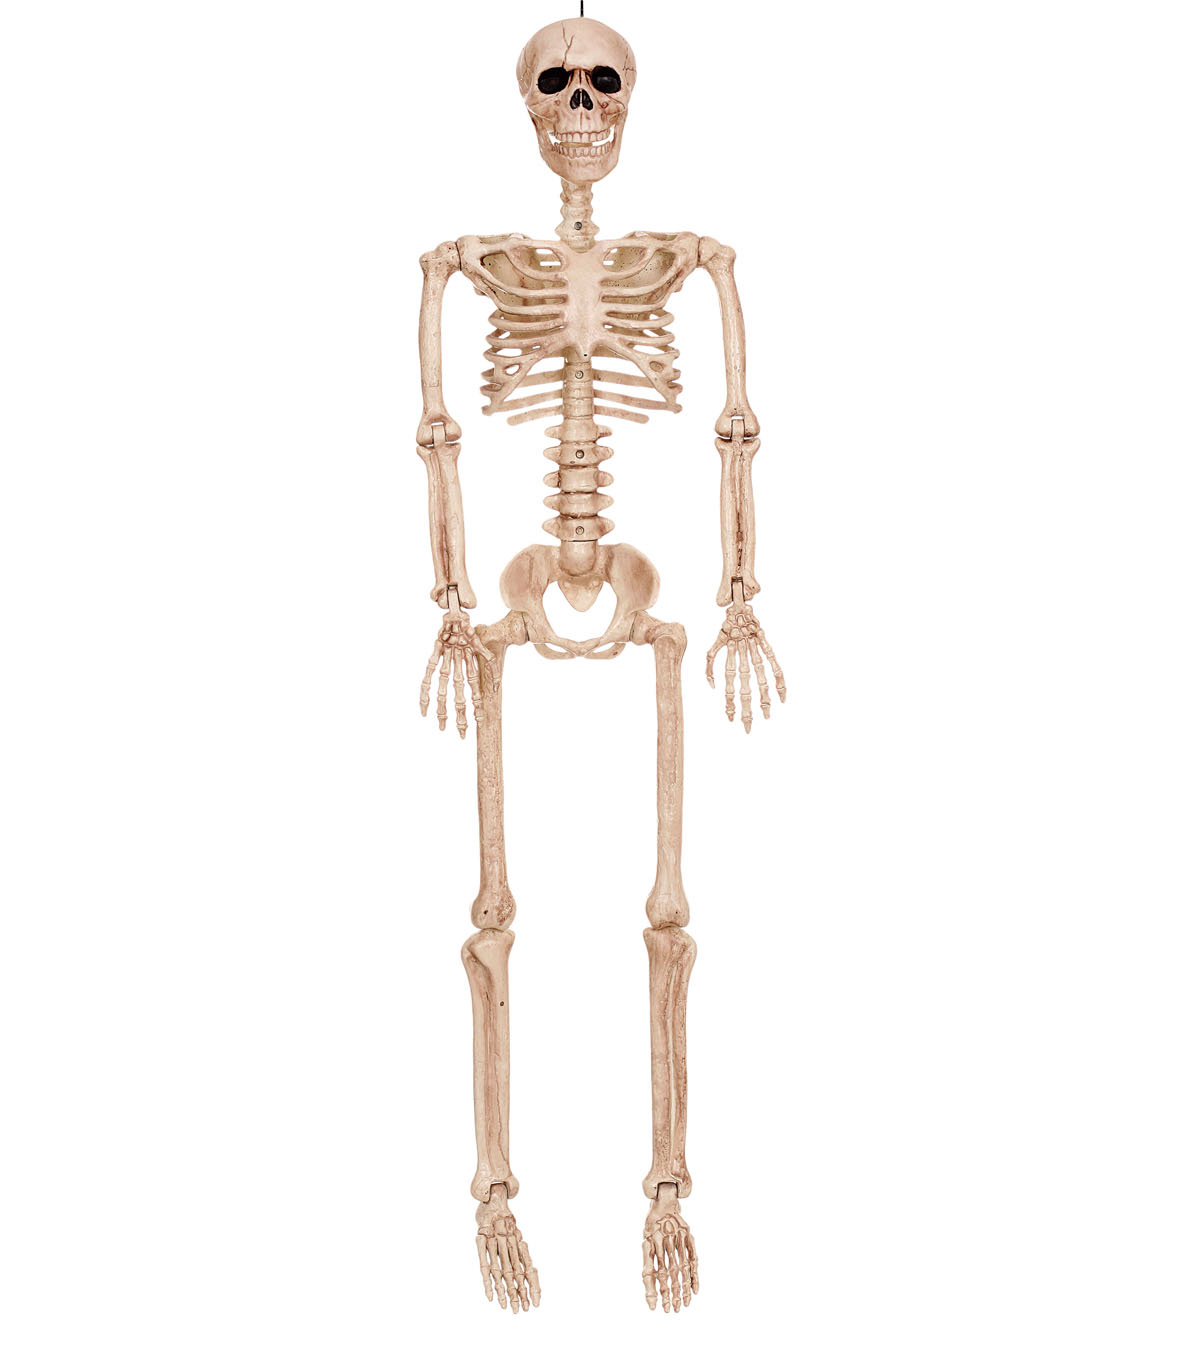 Poseable Skeleton Bones